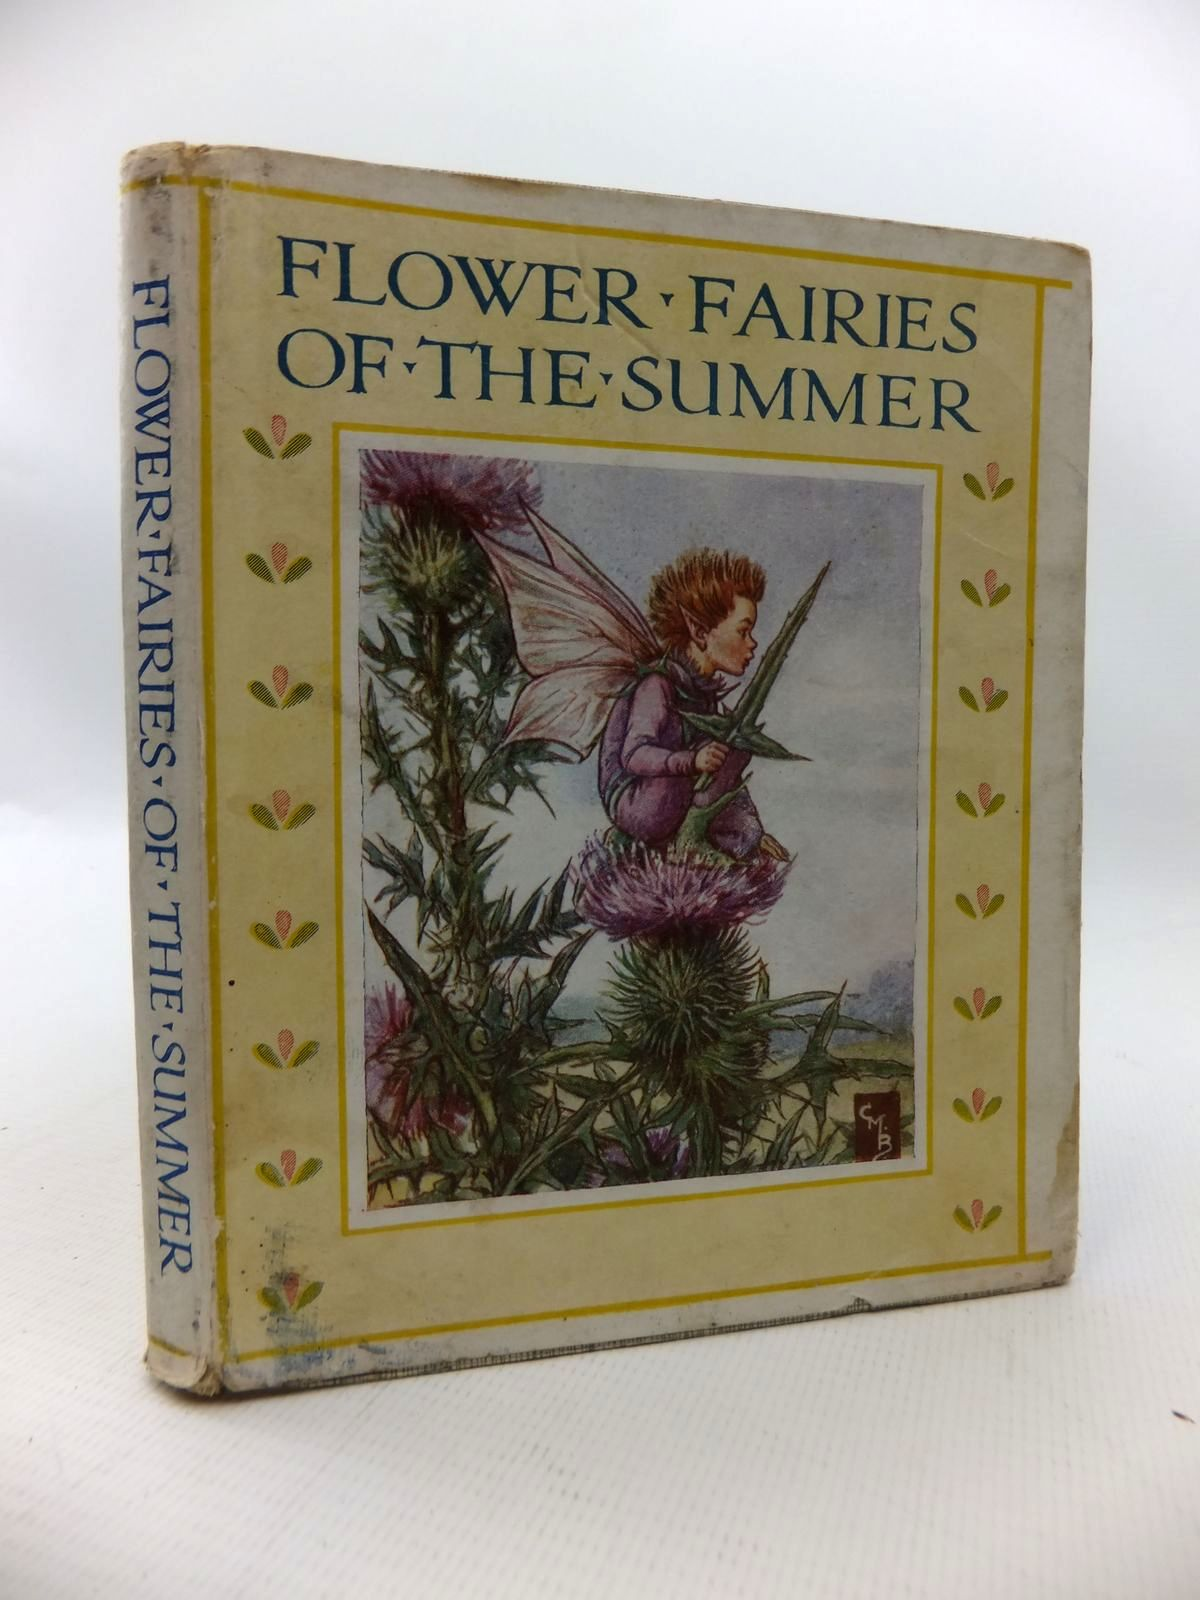 Photo of FLOWER FAIRIES OF THE SUMMER written by Barker, Cicely Mary illustrated by Barker, Cicely Mary published by Blackie & Son Ltd. (STOCK CODE: 1814694)  for sale by Stella & Rose's Books